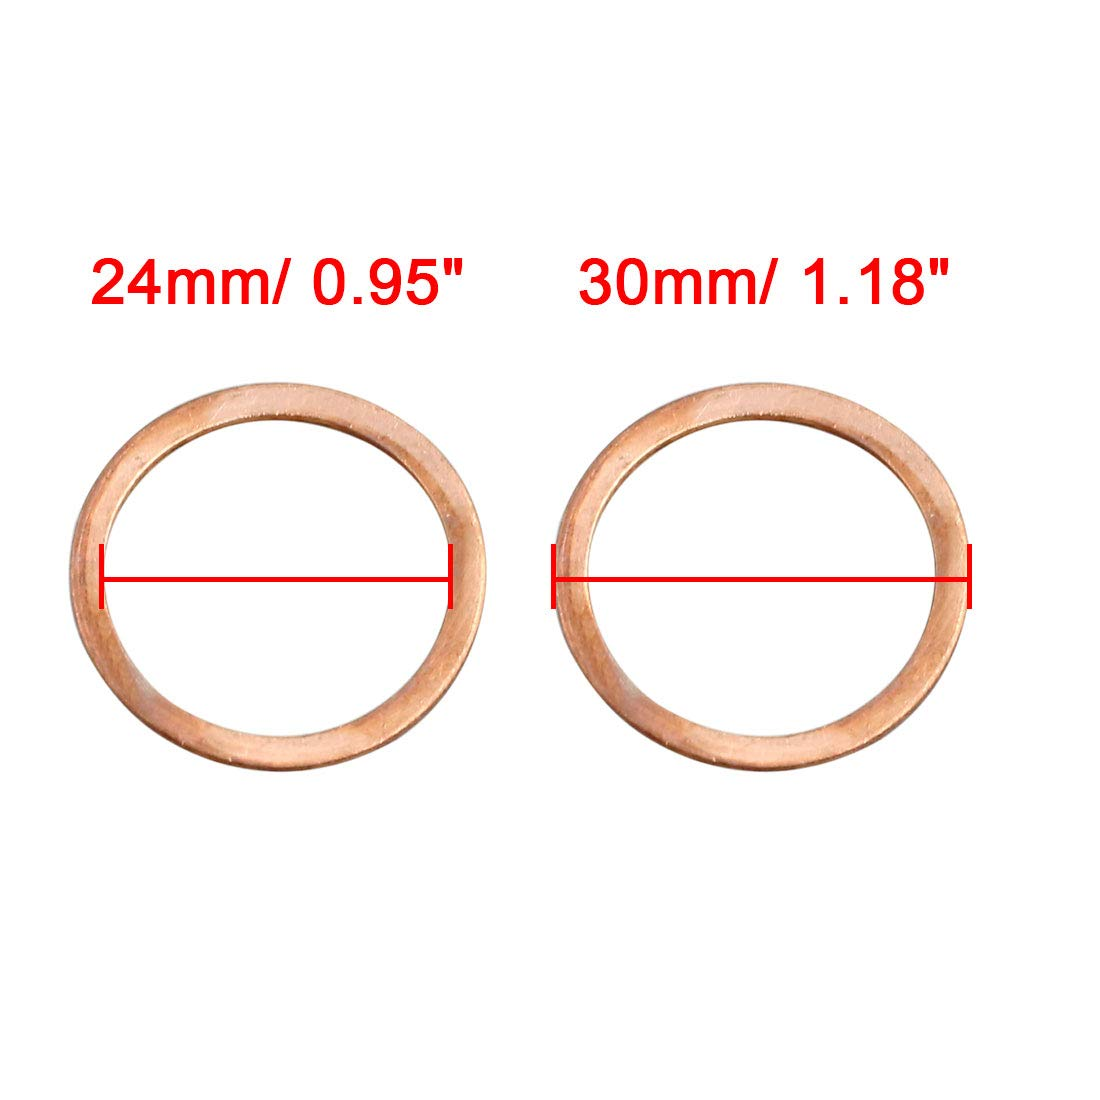 X AUTOHAUX 20pcs 24mm Inner Diameter Copper Washers Flat Sealing Gaskets Rings by X AUTOHAUX (Image #3)